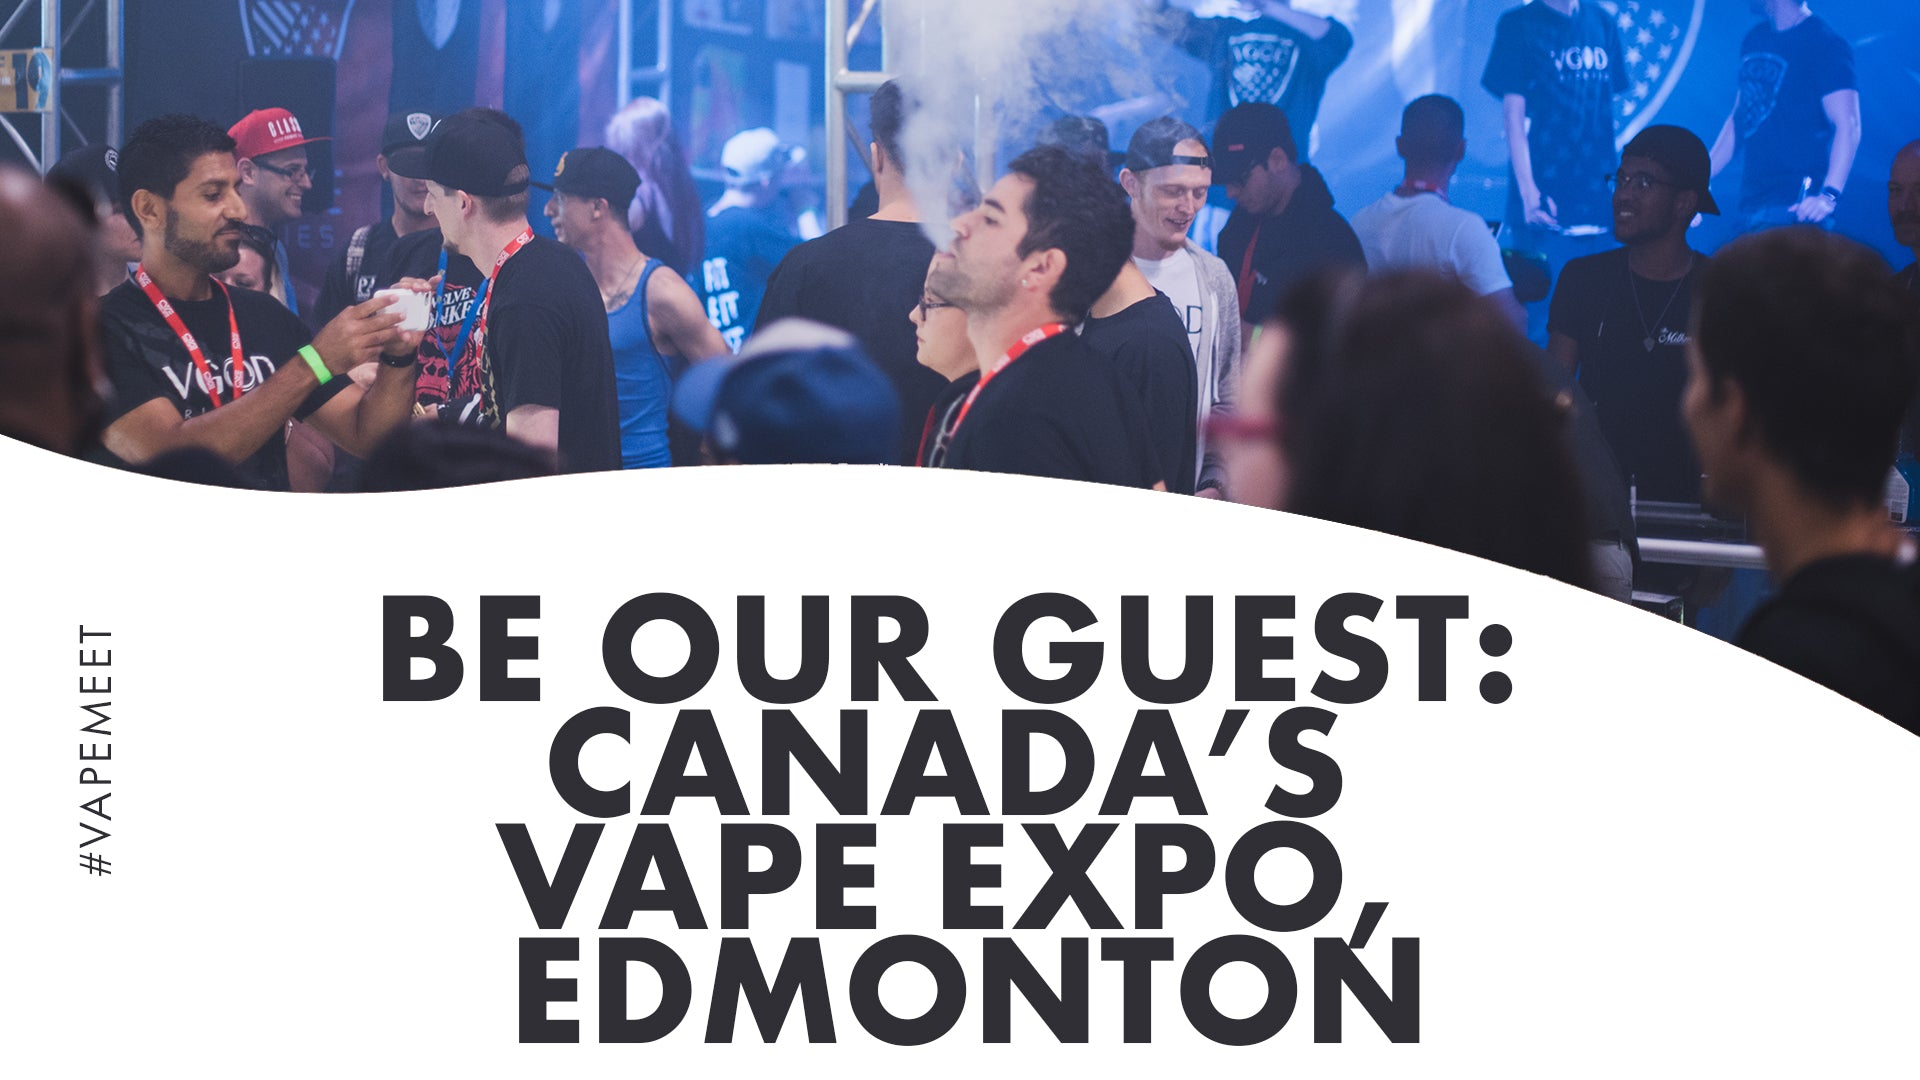 Be Our Guest: Canada's Vape Expo, Edmonton